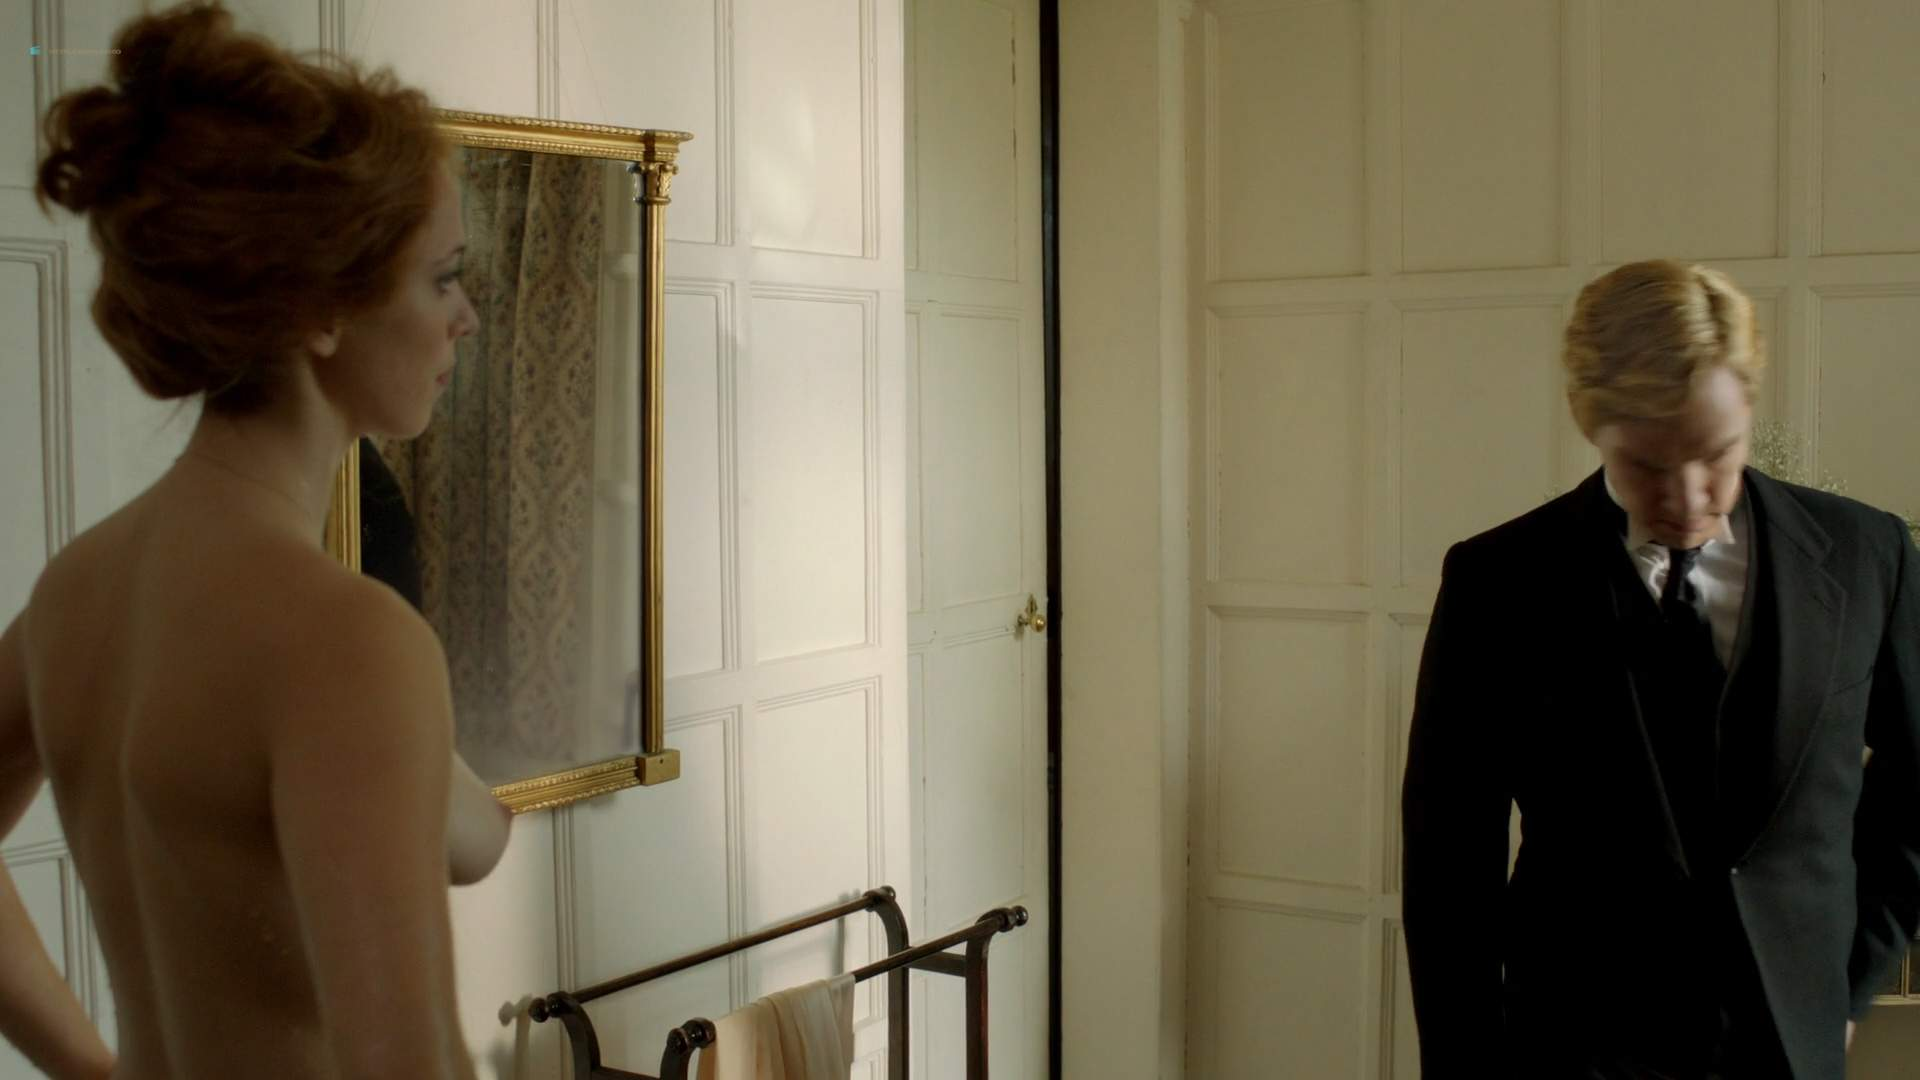 Adelaide clemens parades end - 2 part 10